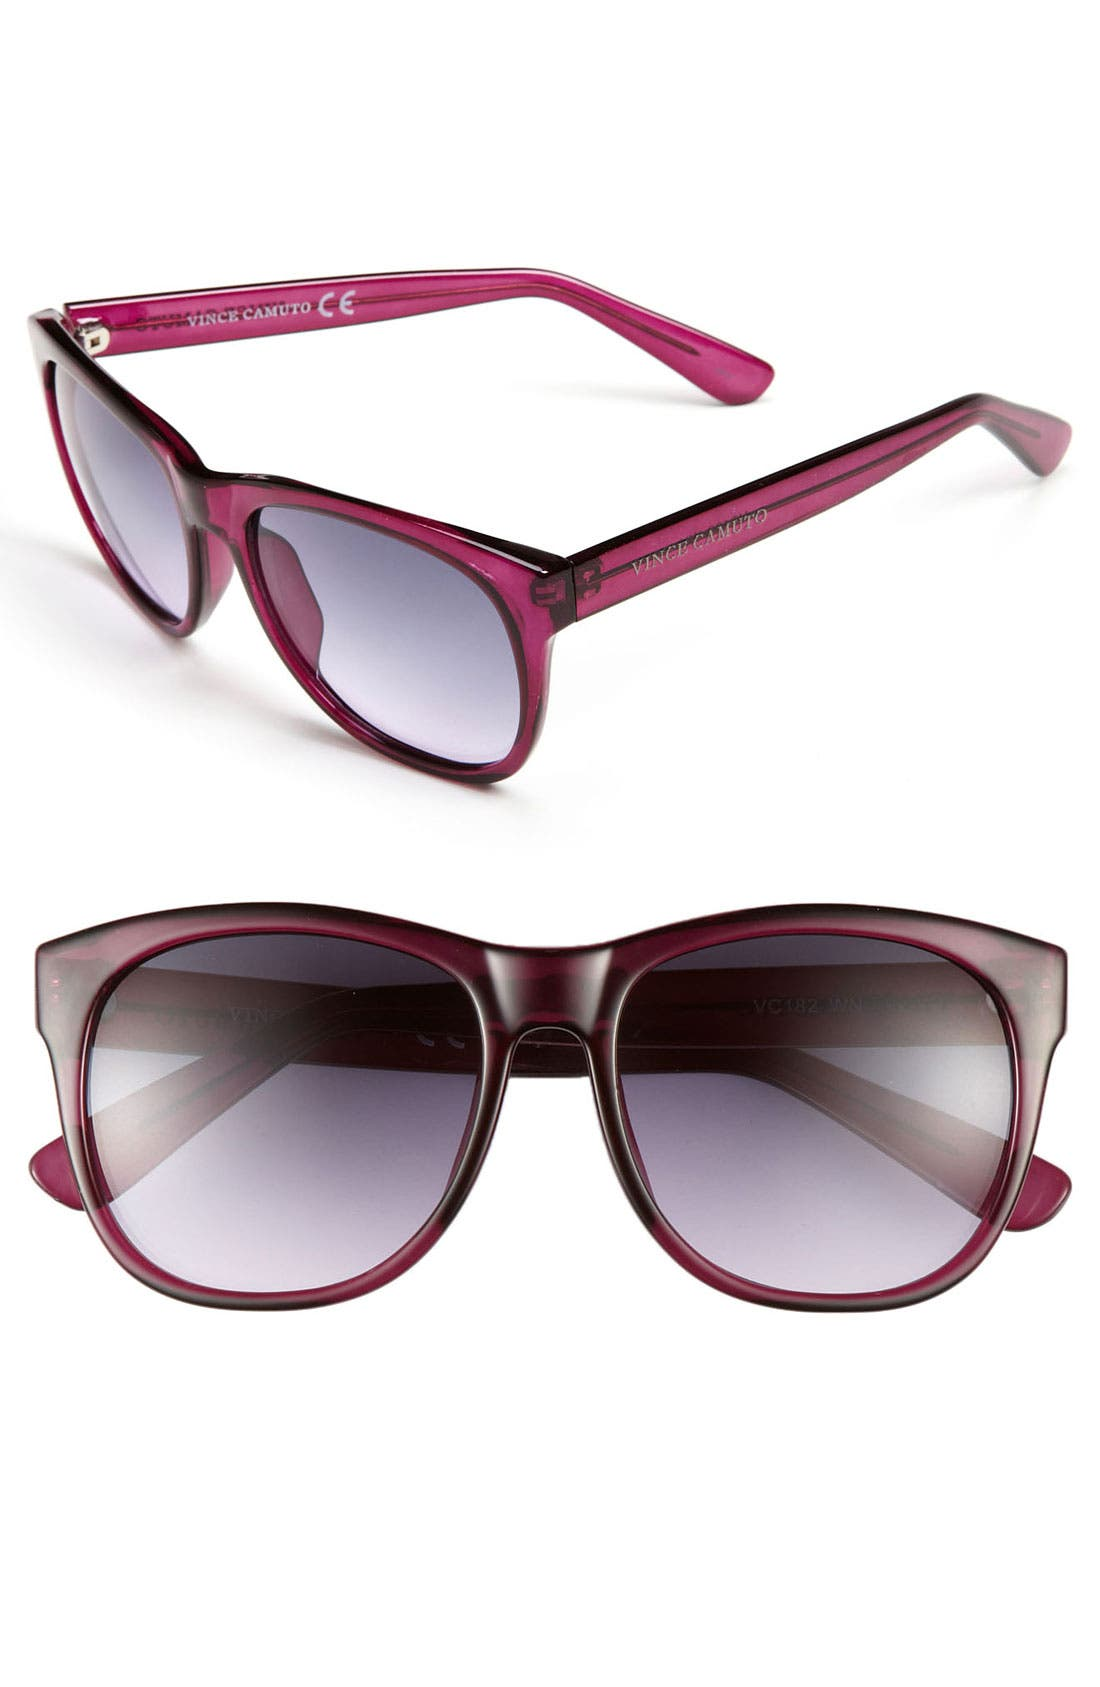 Alternate Image 1 Selected - Vince Camuto 55mm Oversized Sunglasses